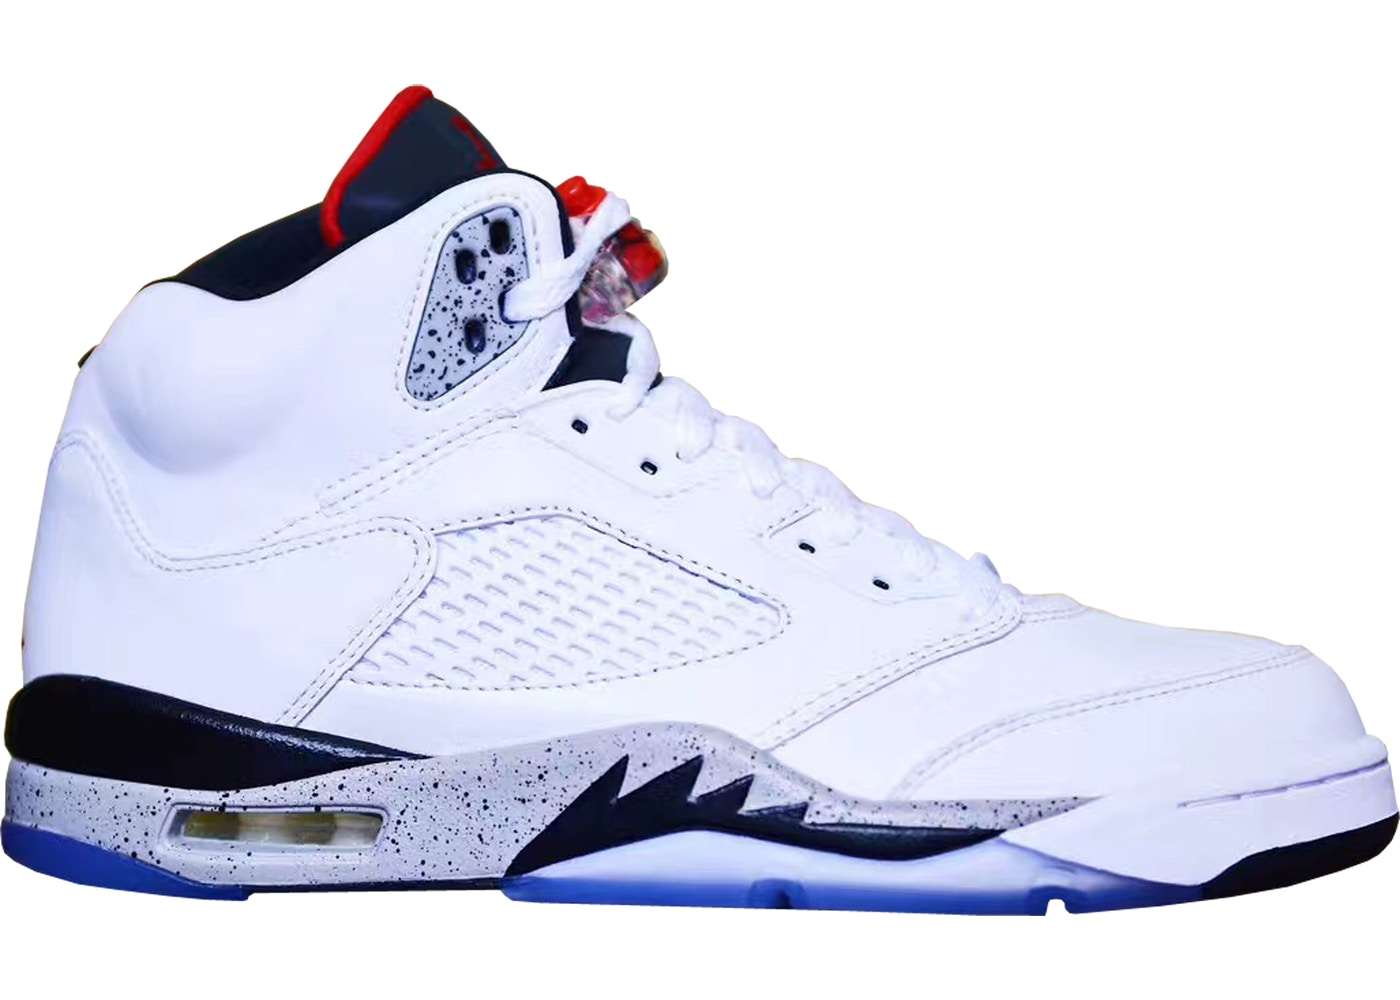 d562eb91665c Jordan 5 Retro White Cement - 136027-104